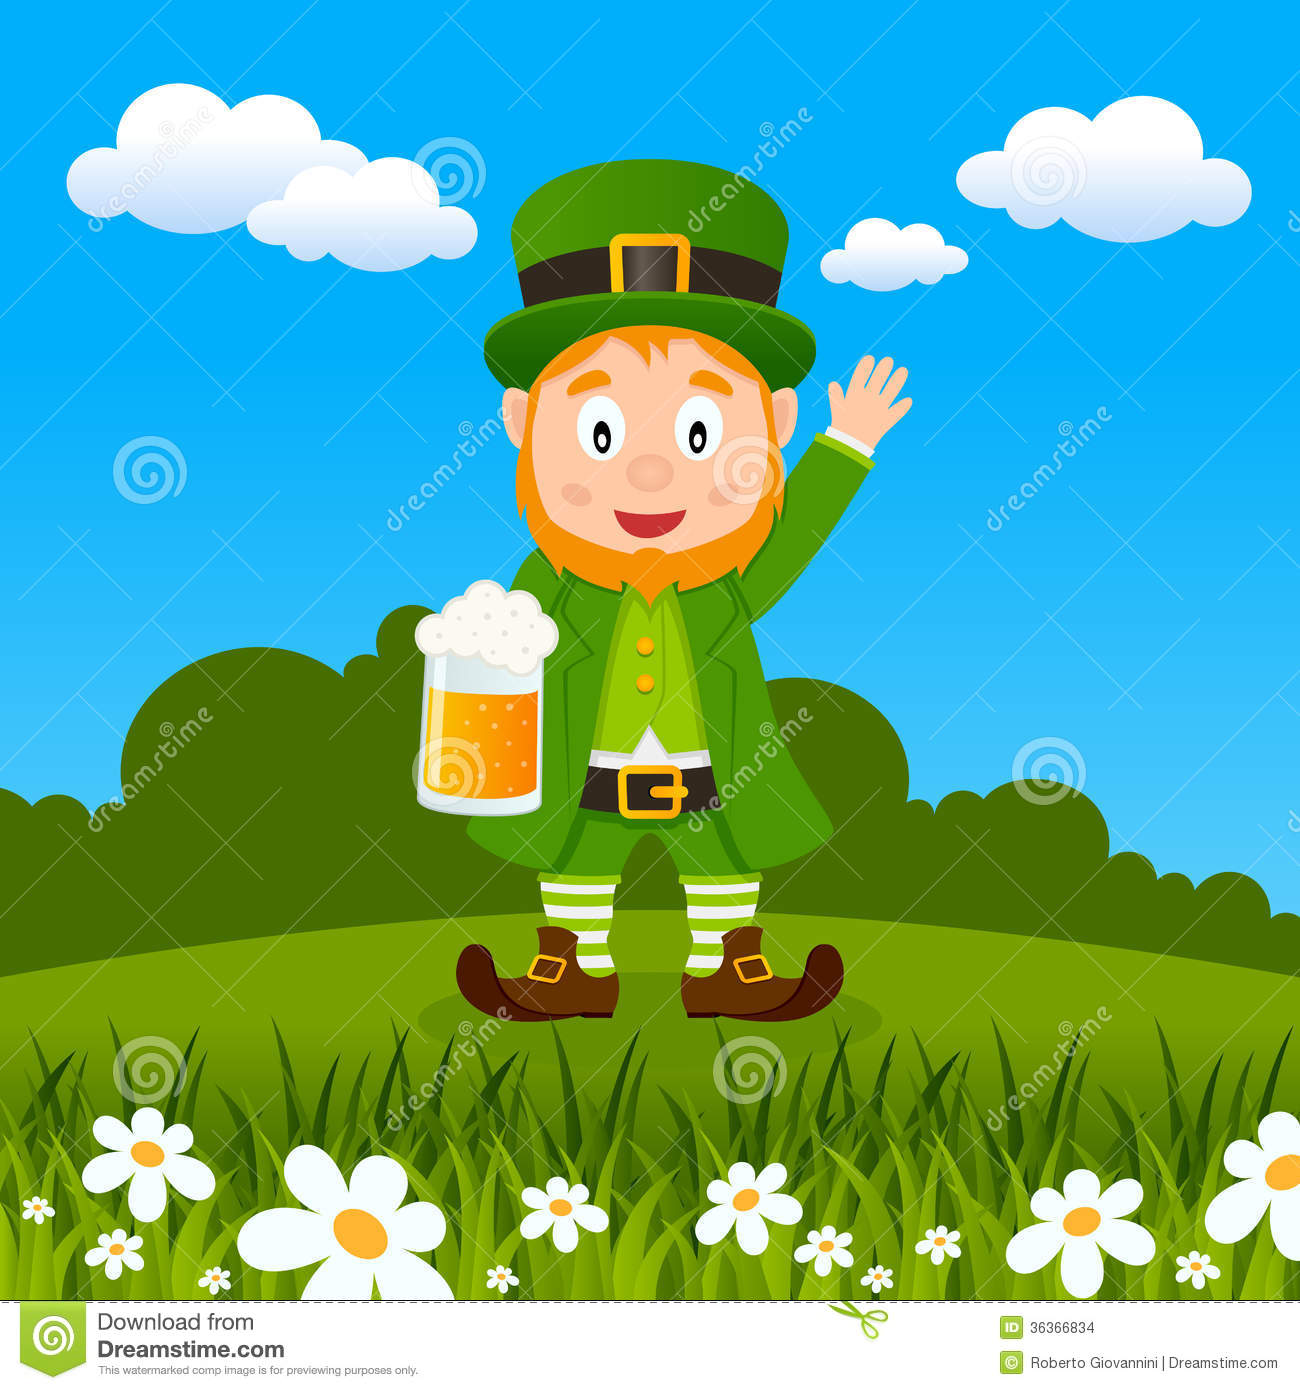 Happy Cartoon Leprechaun Character Holding A Beer Mug And Smiling In A